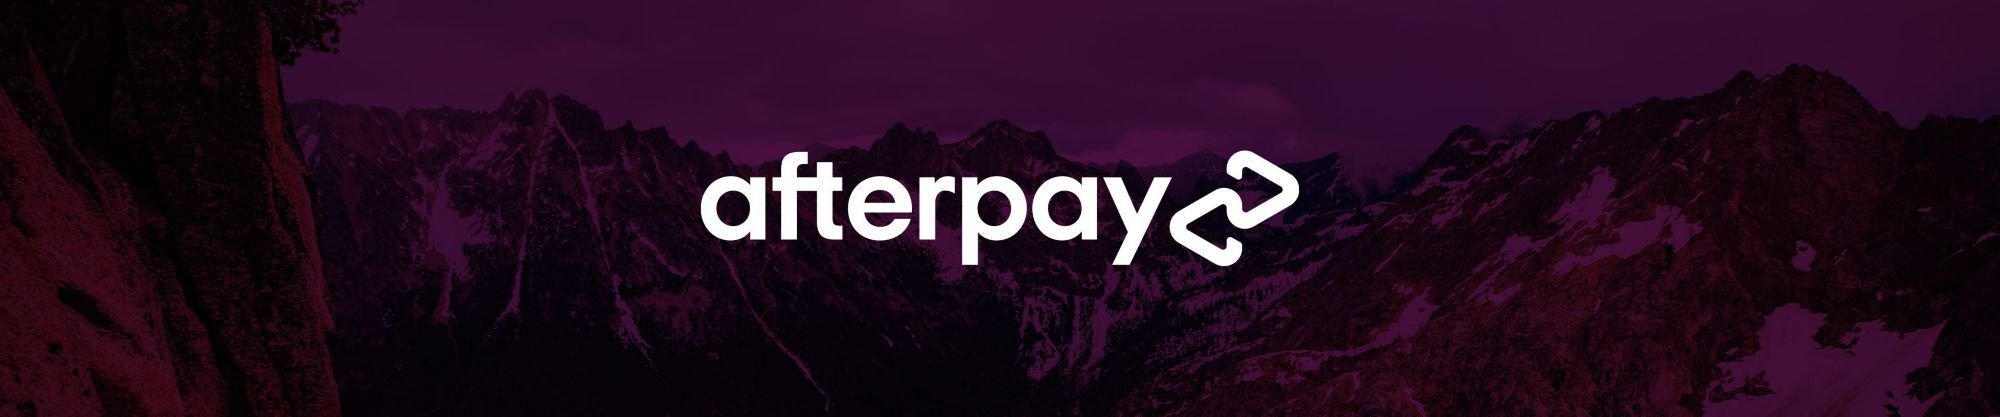 after pay logo slim banner